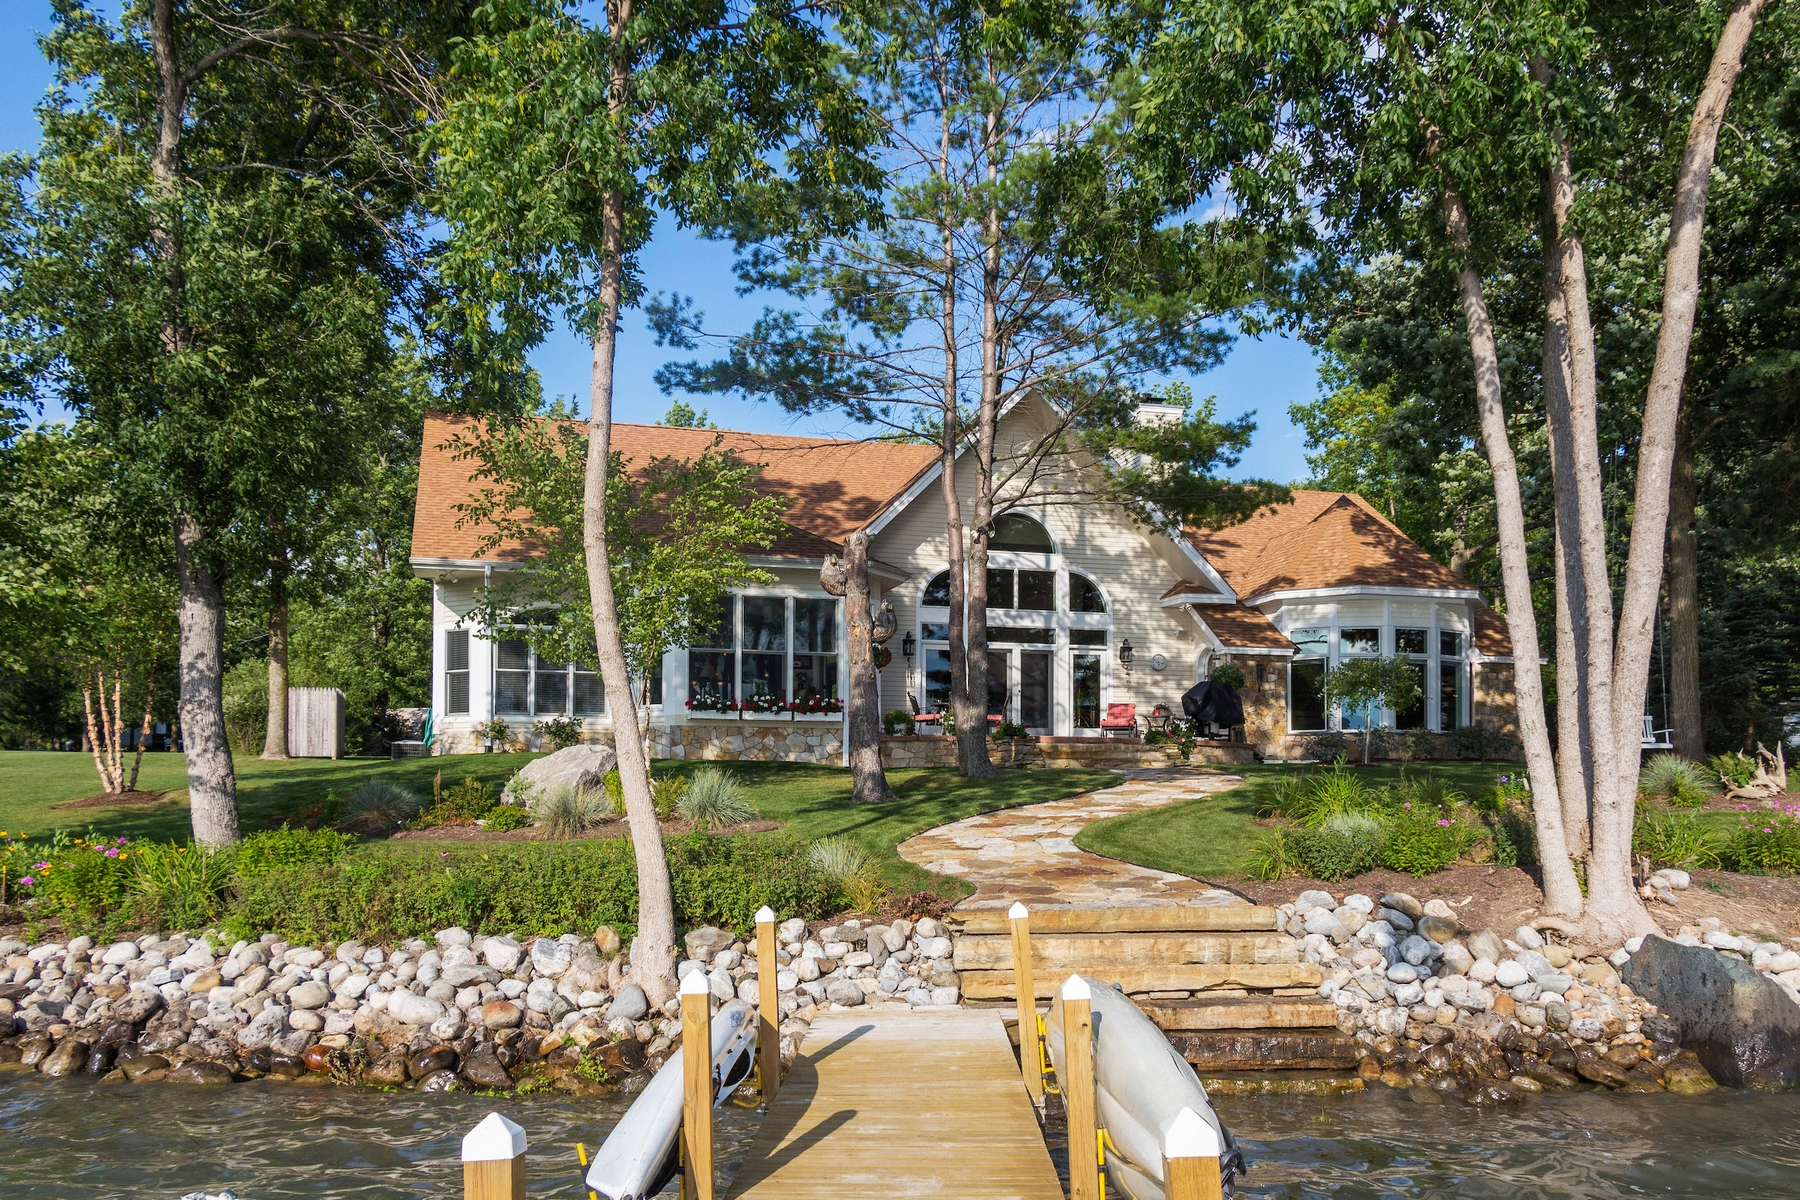 Casa para uma família para Venda às Custom Waterfront Home on Lake George 212 Black Point Road Ticonderoga, Nova York 12883 Estados UnidosEm/Em torno de: Lake George